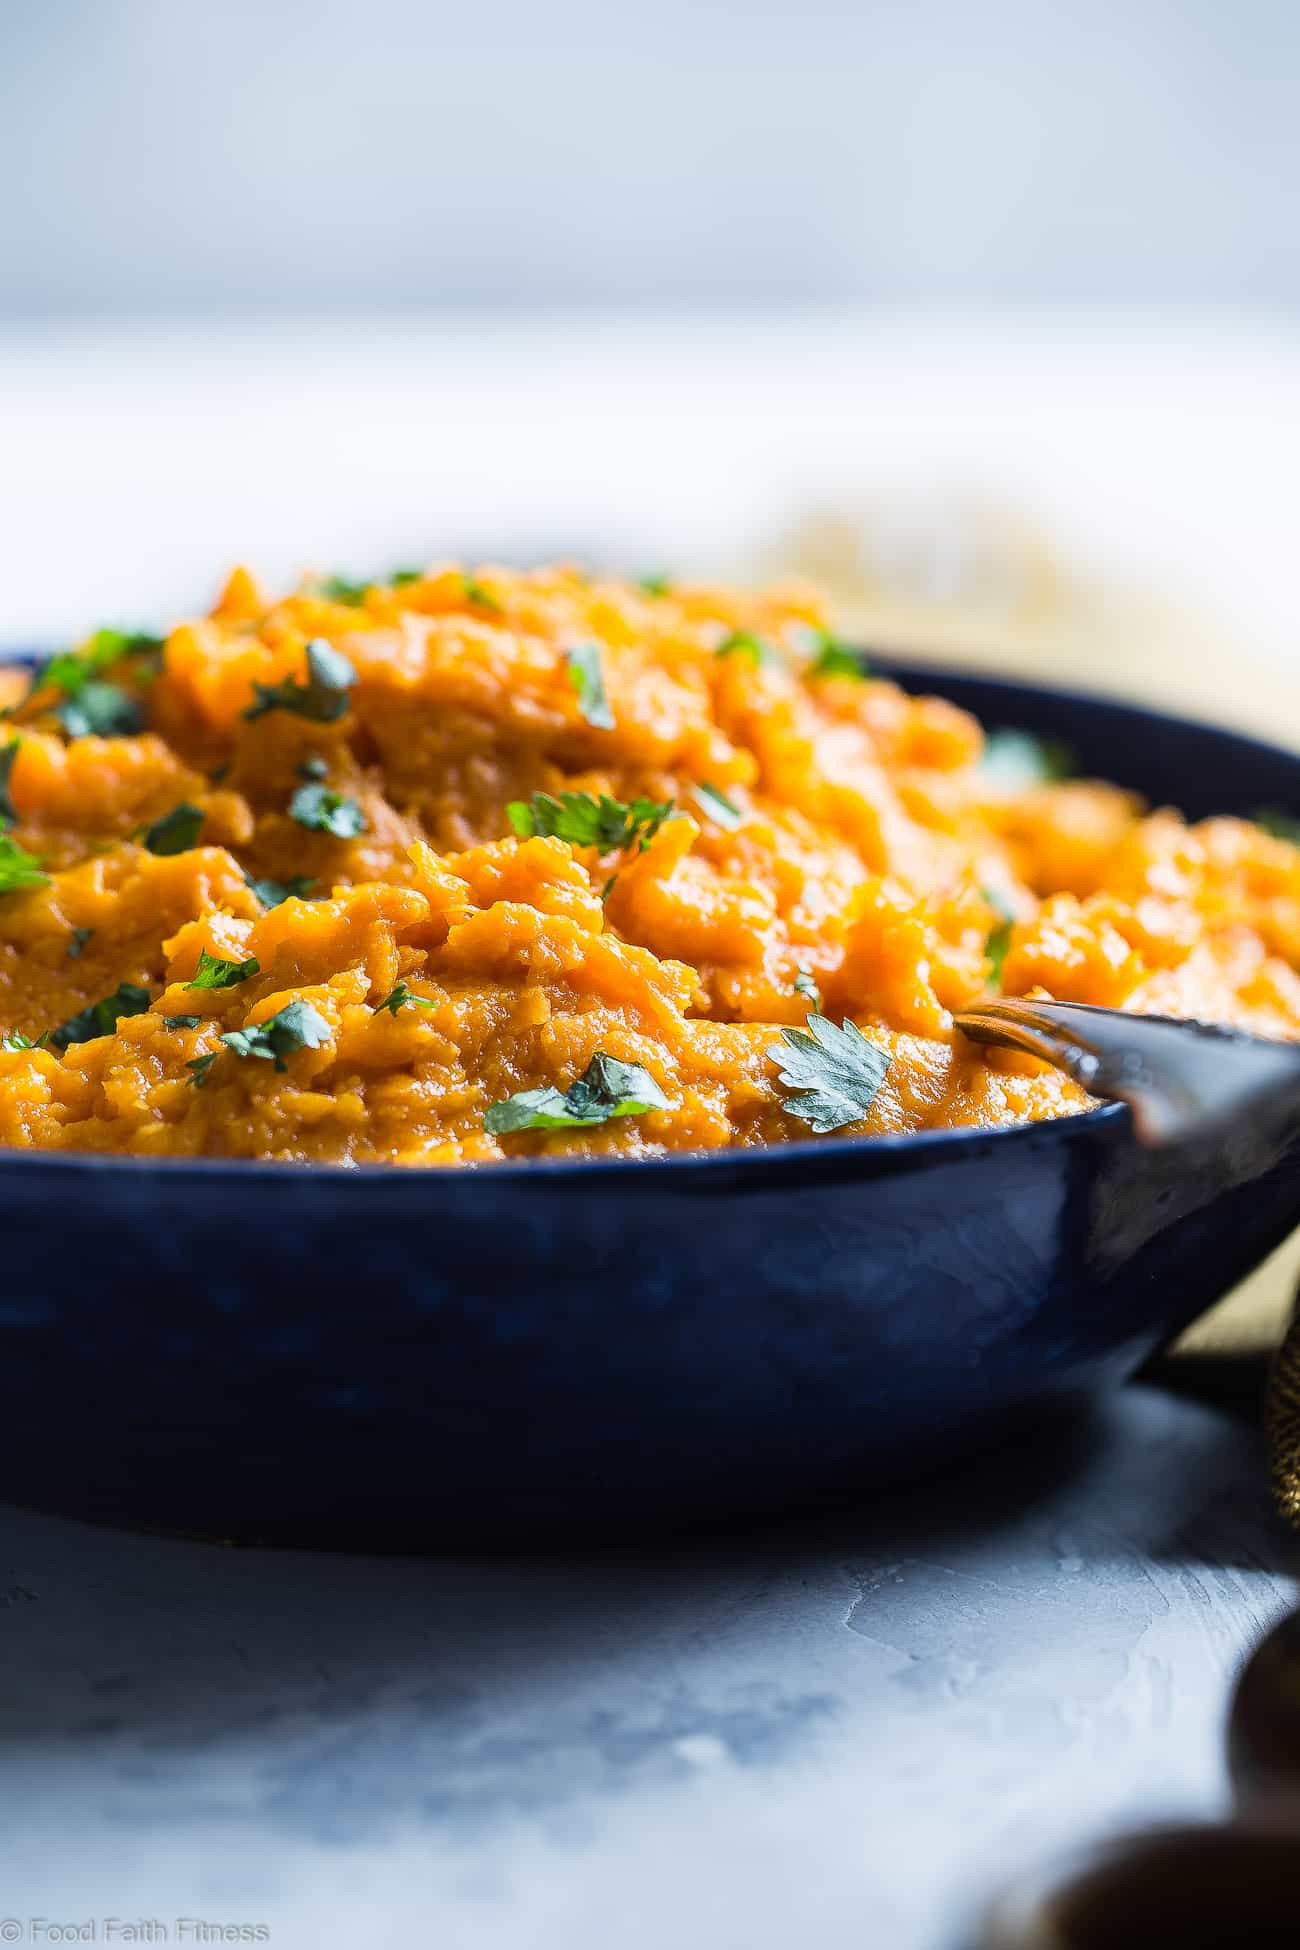 Mashed Sweet Potatoes Recipe Healthy  Curried Savory Vegan Healthy Mashed Sweet Potatoes